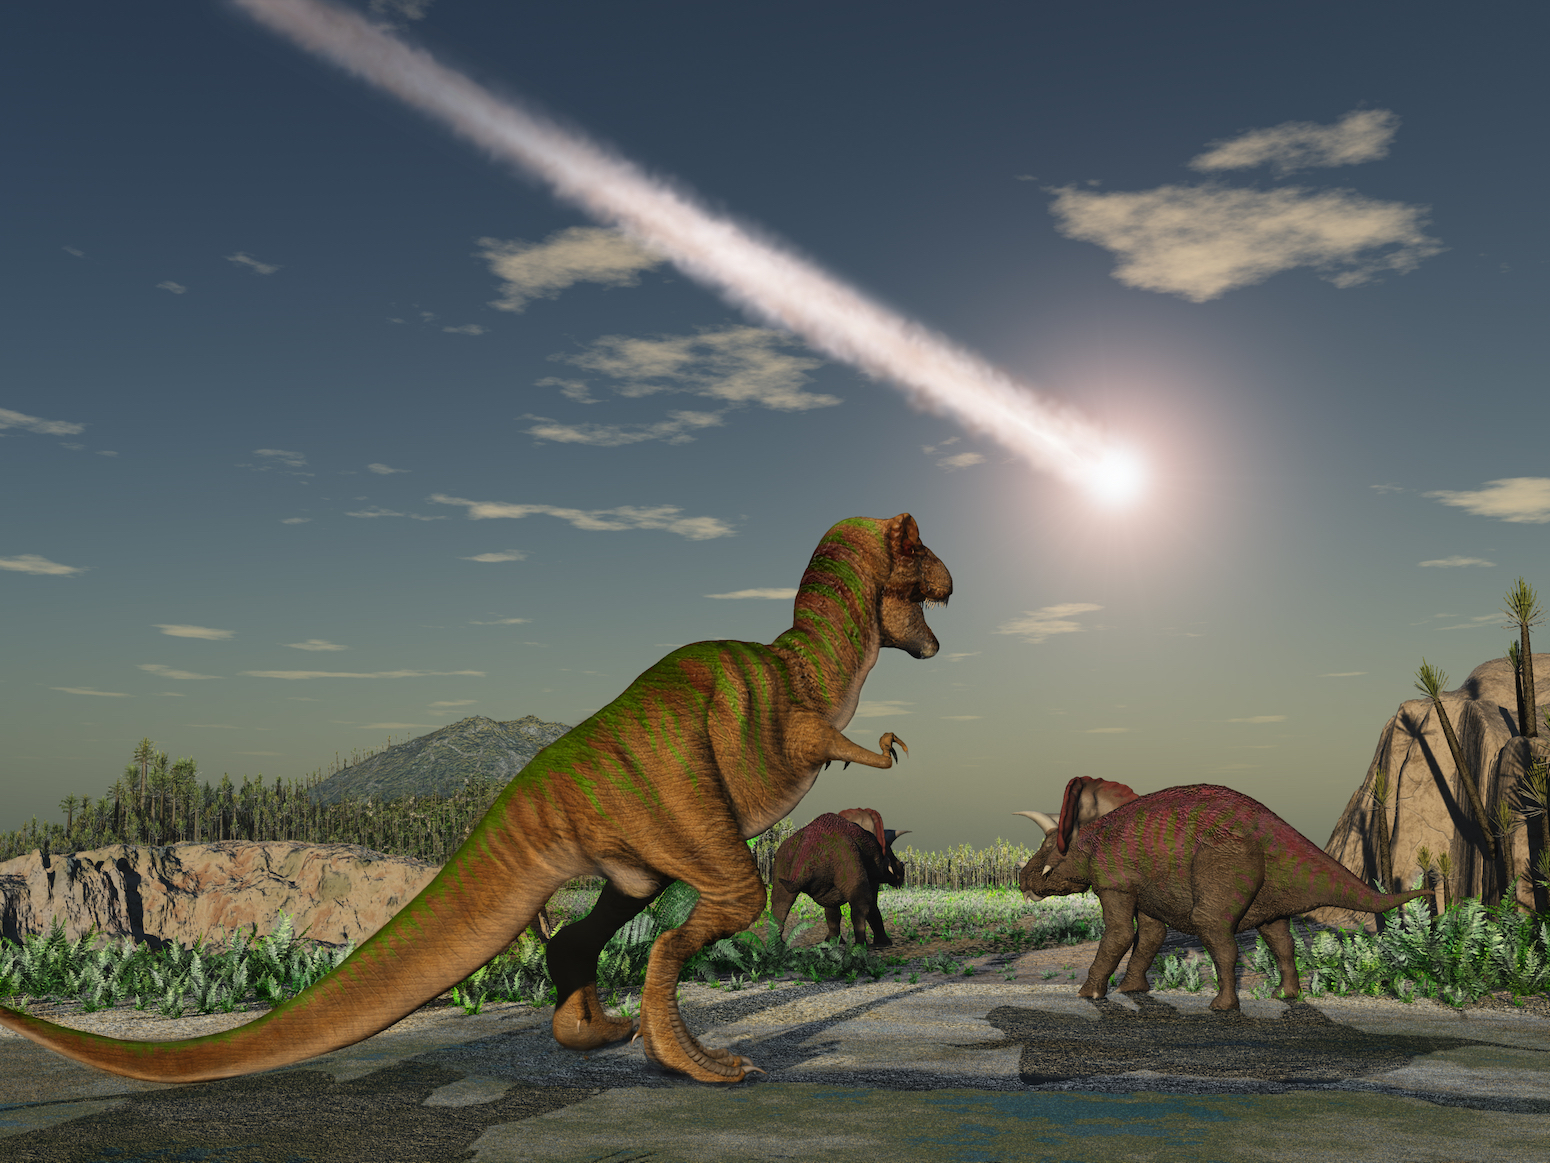 Researchers are reporting that a population boom put dinosaurs at risk of extinction because they were running out of space.